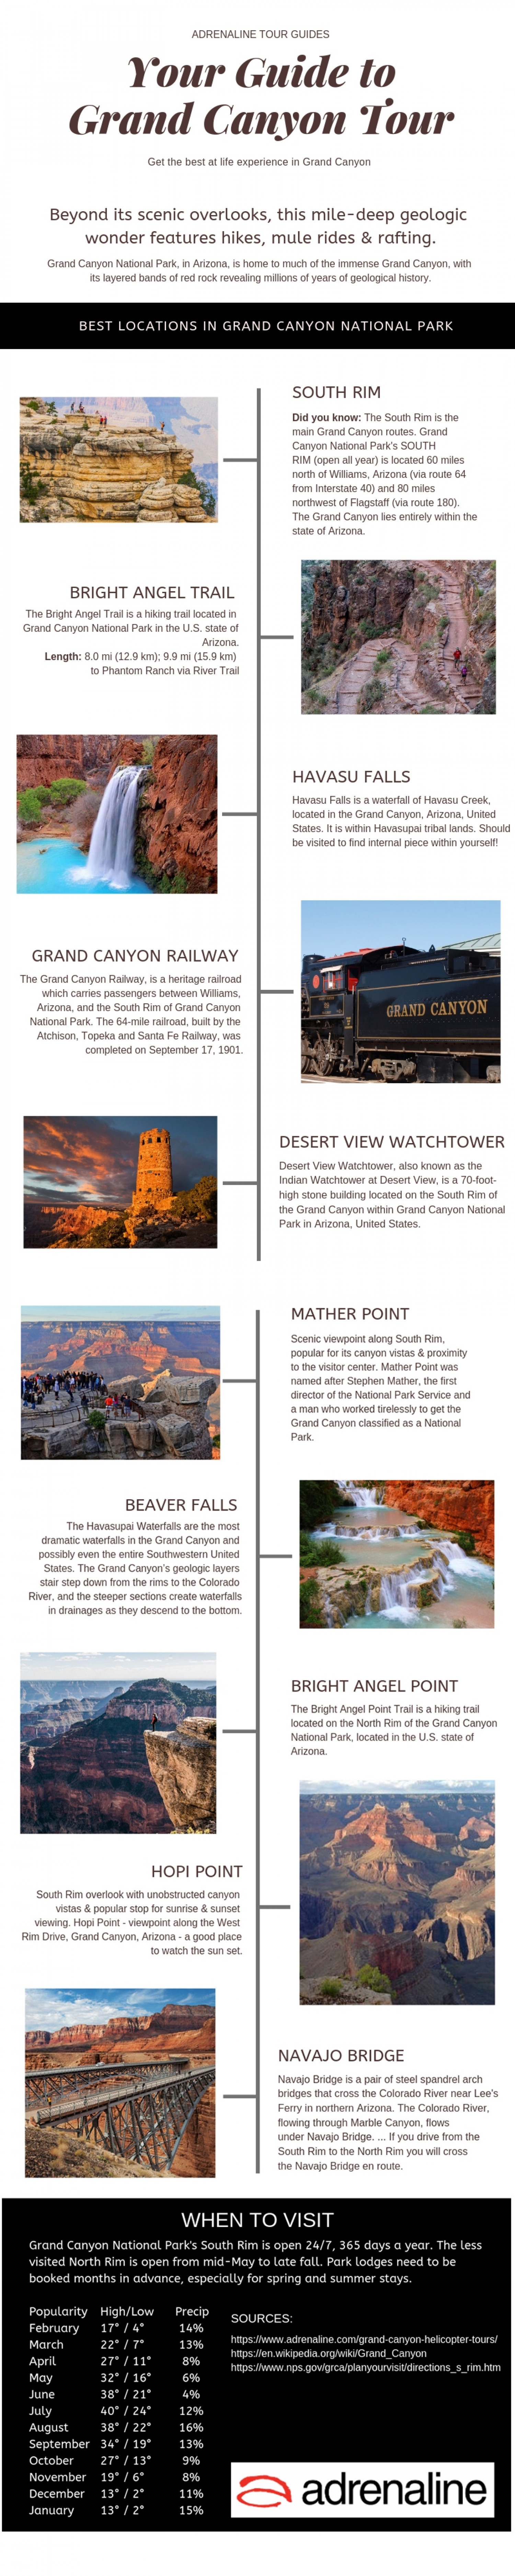 Grand Canyon Tour Best Locations to visit Infographic